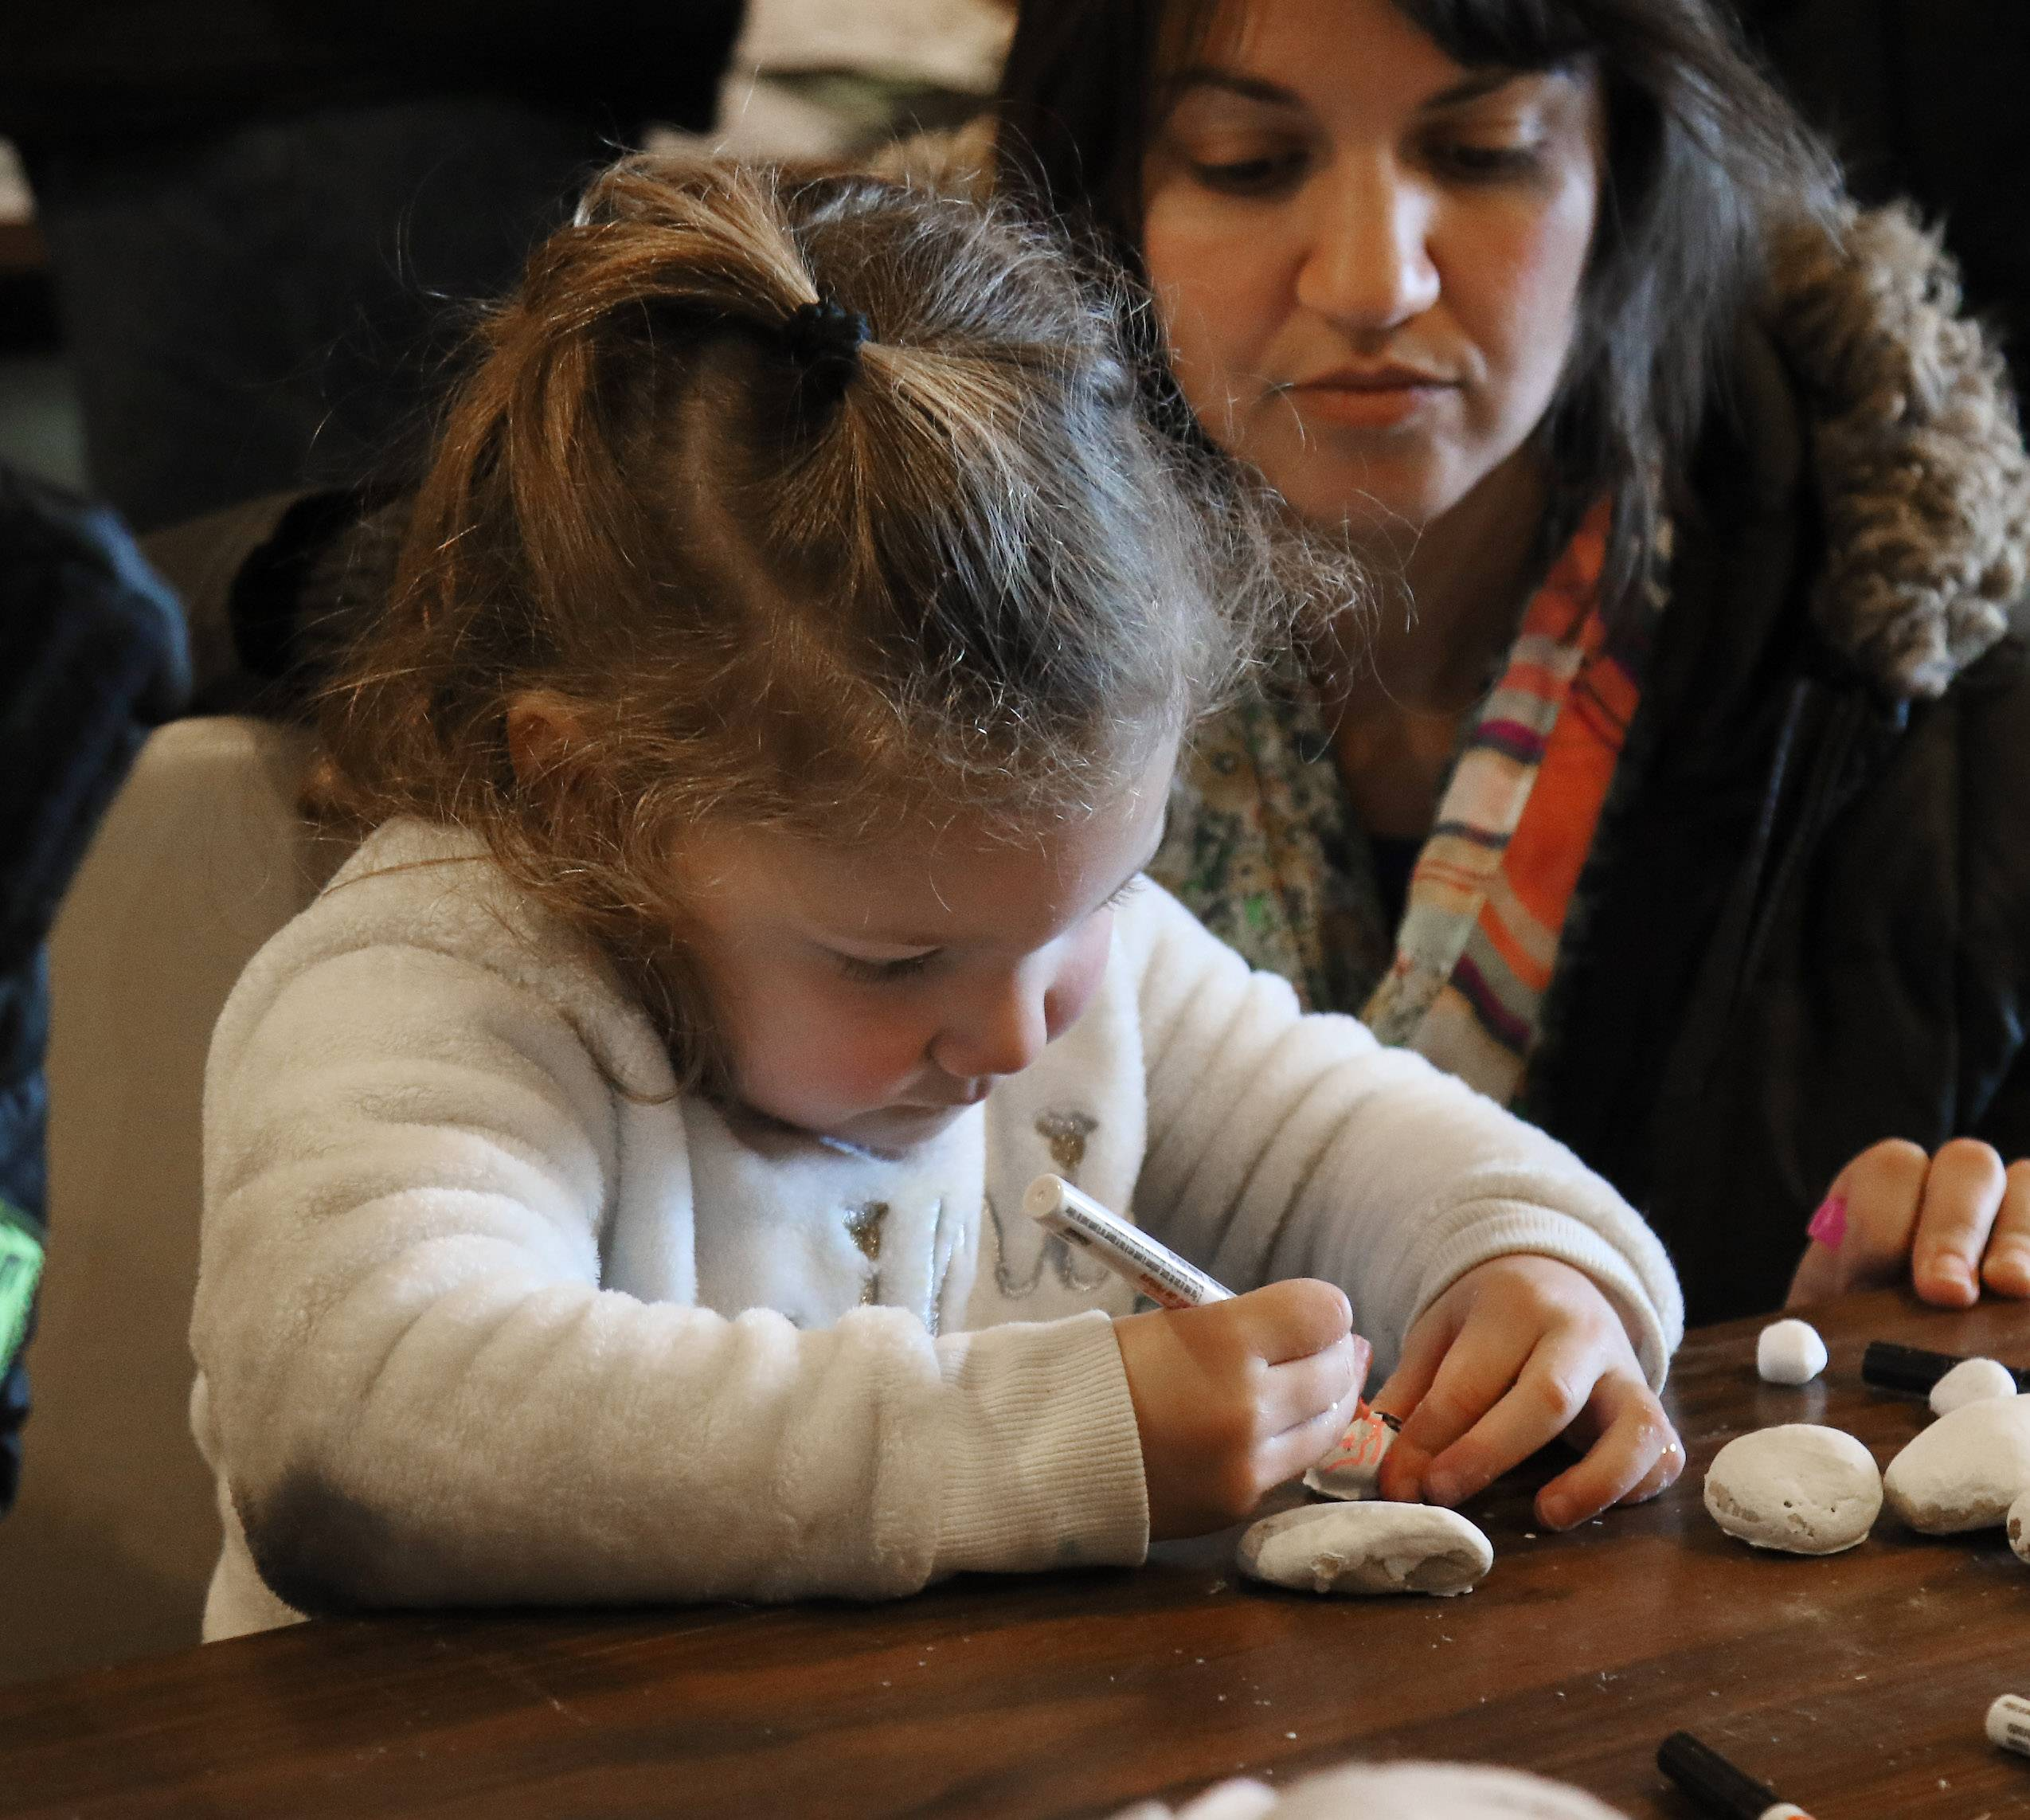 Harper Linane, 3, of Fox Lake makes a snowman from small white rocks with her mother, Ali, during Sunday's WinterFest at Volo Bog State Natural Area in Ingleside. The annual event featured tours of the bog, live music, a photo contest, winter-themed crafts and food.